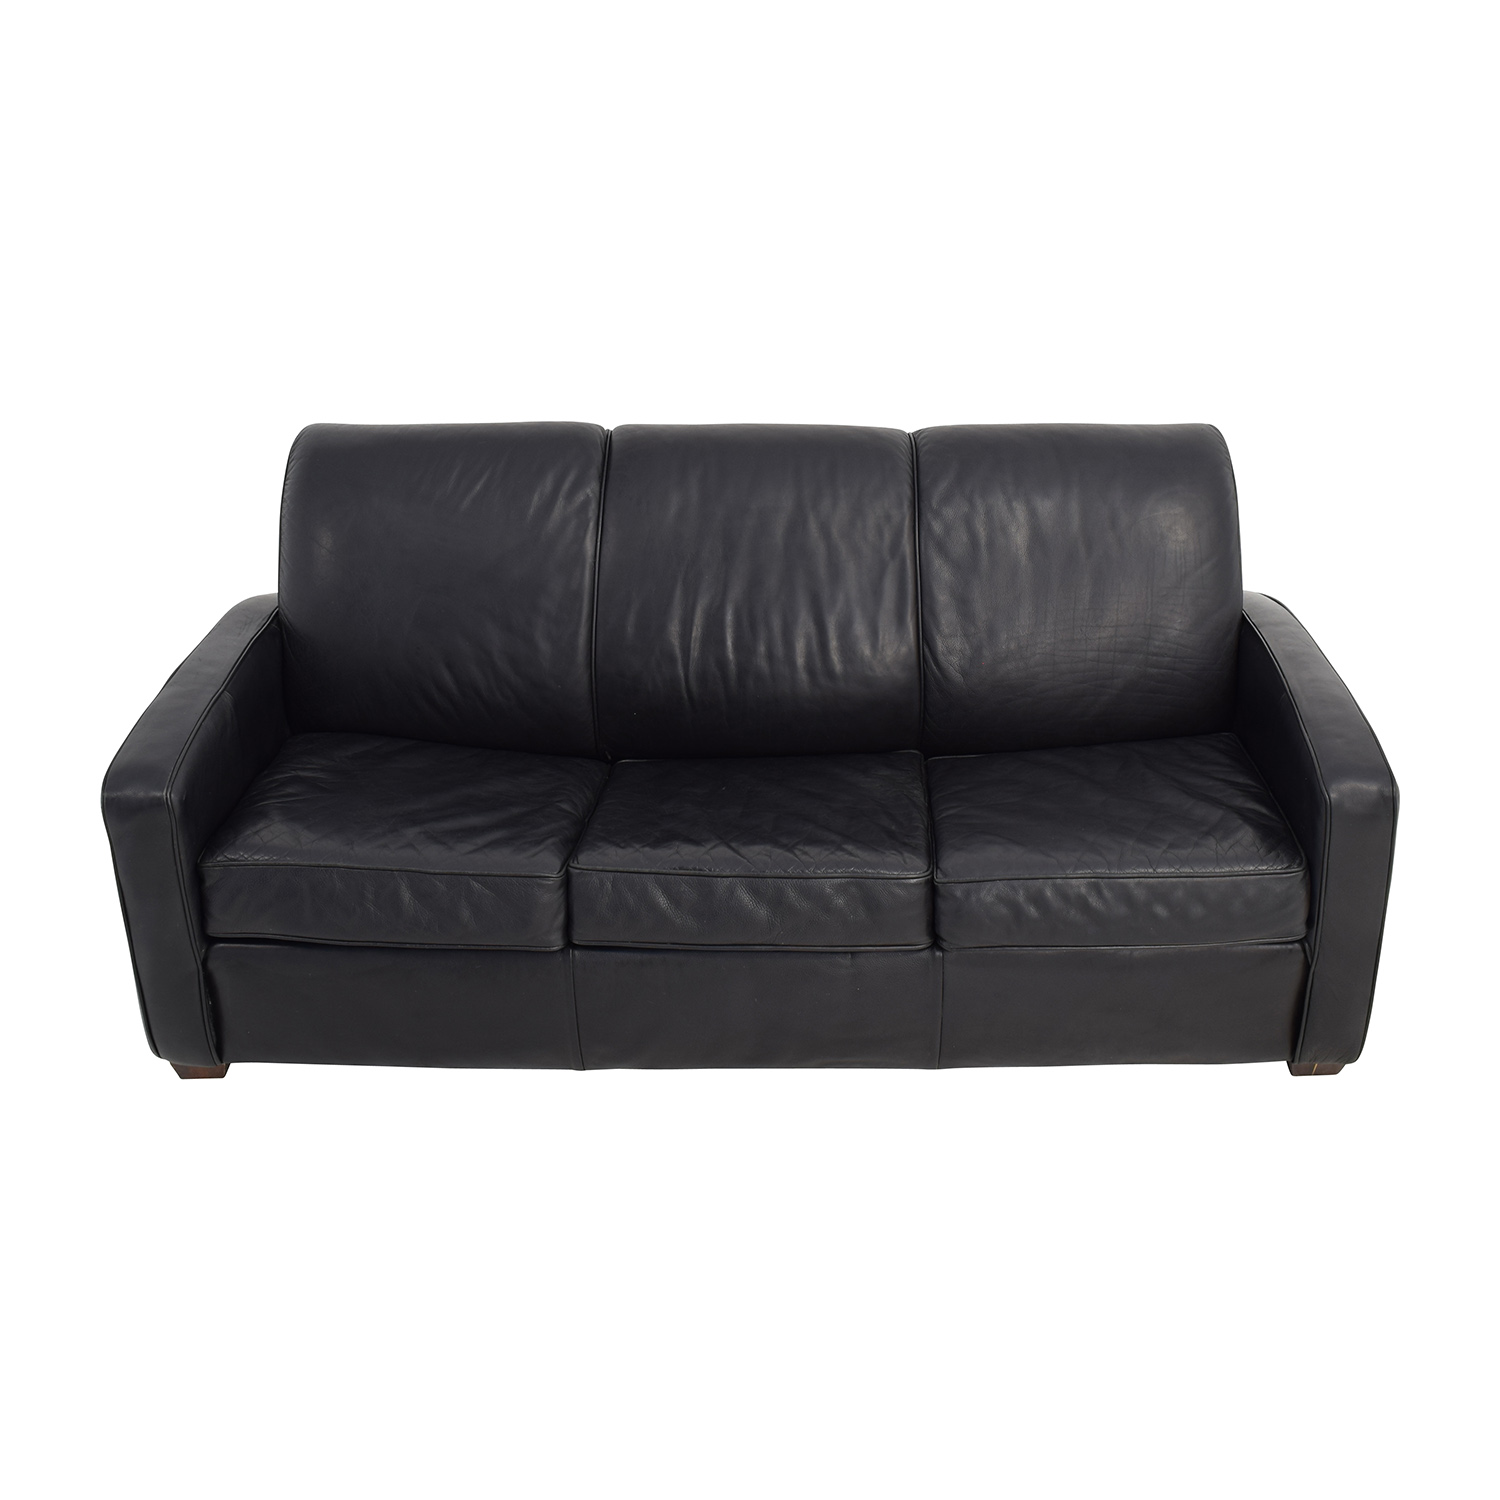 Leggett And Platt Leggett & Platt Black Leather Sofa Bed Coupon